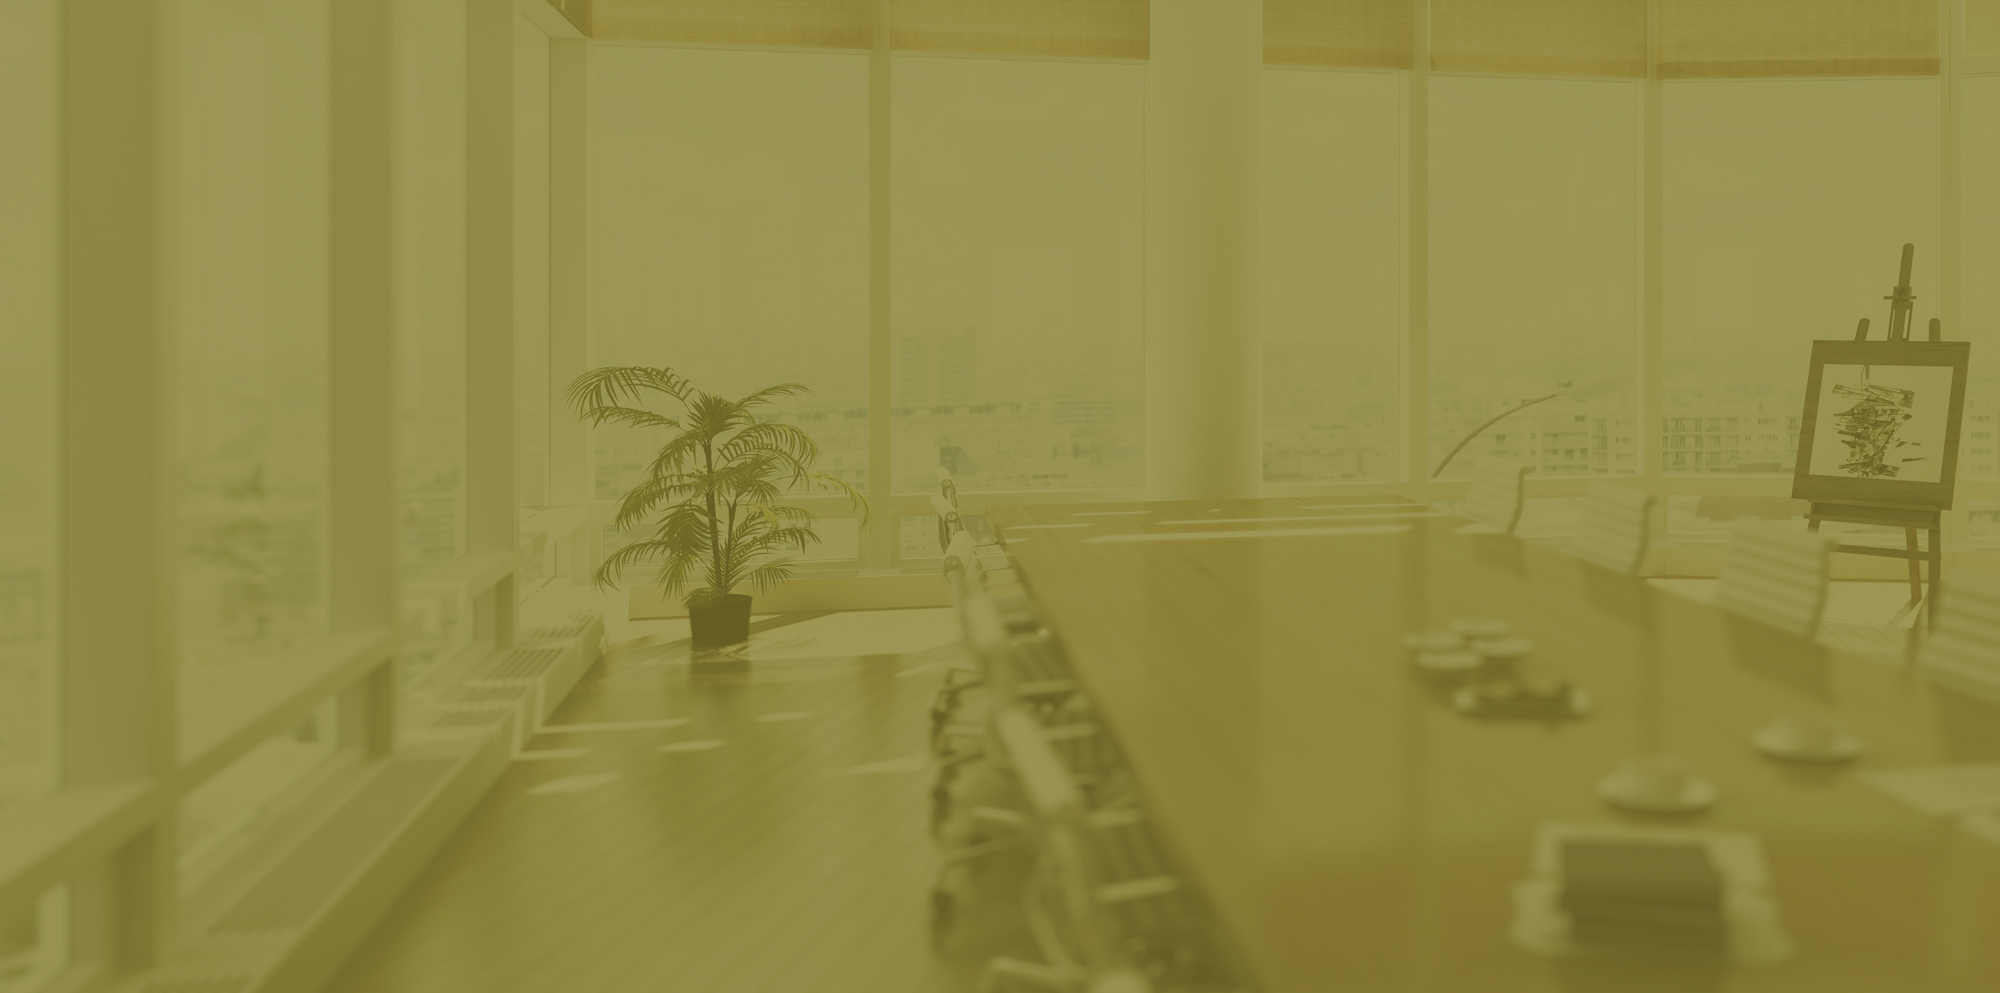 A conference room in an office building with a golden overlay.